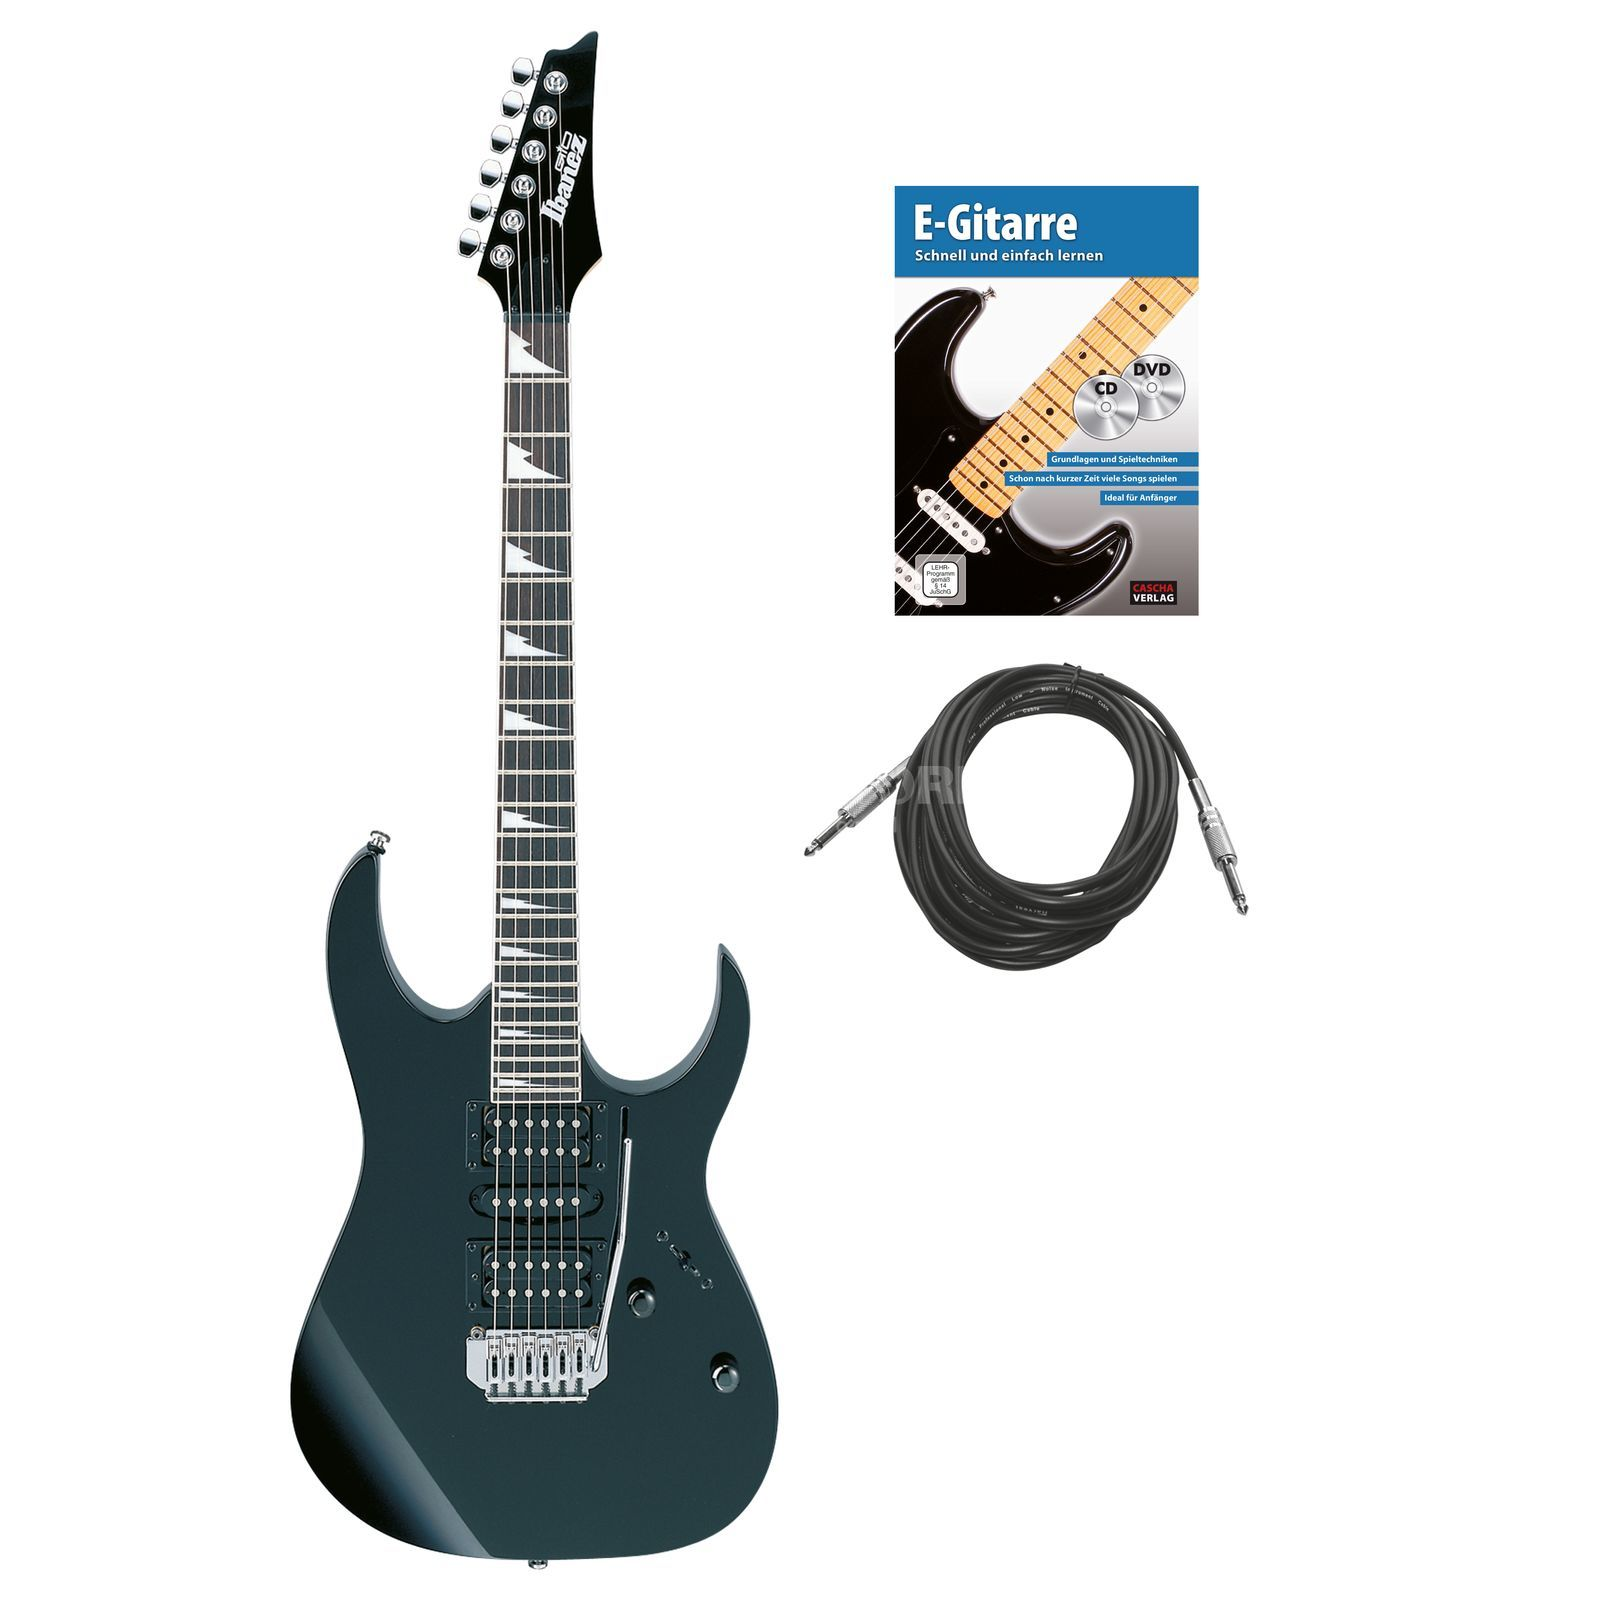 SET IBANEZ GRG170DX Black Night + FAME PL60R + Kabel + Songbook Produktbillede